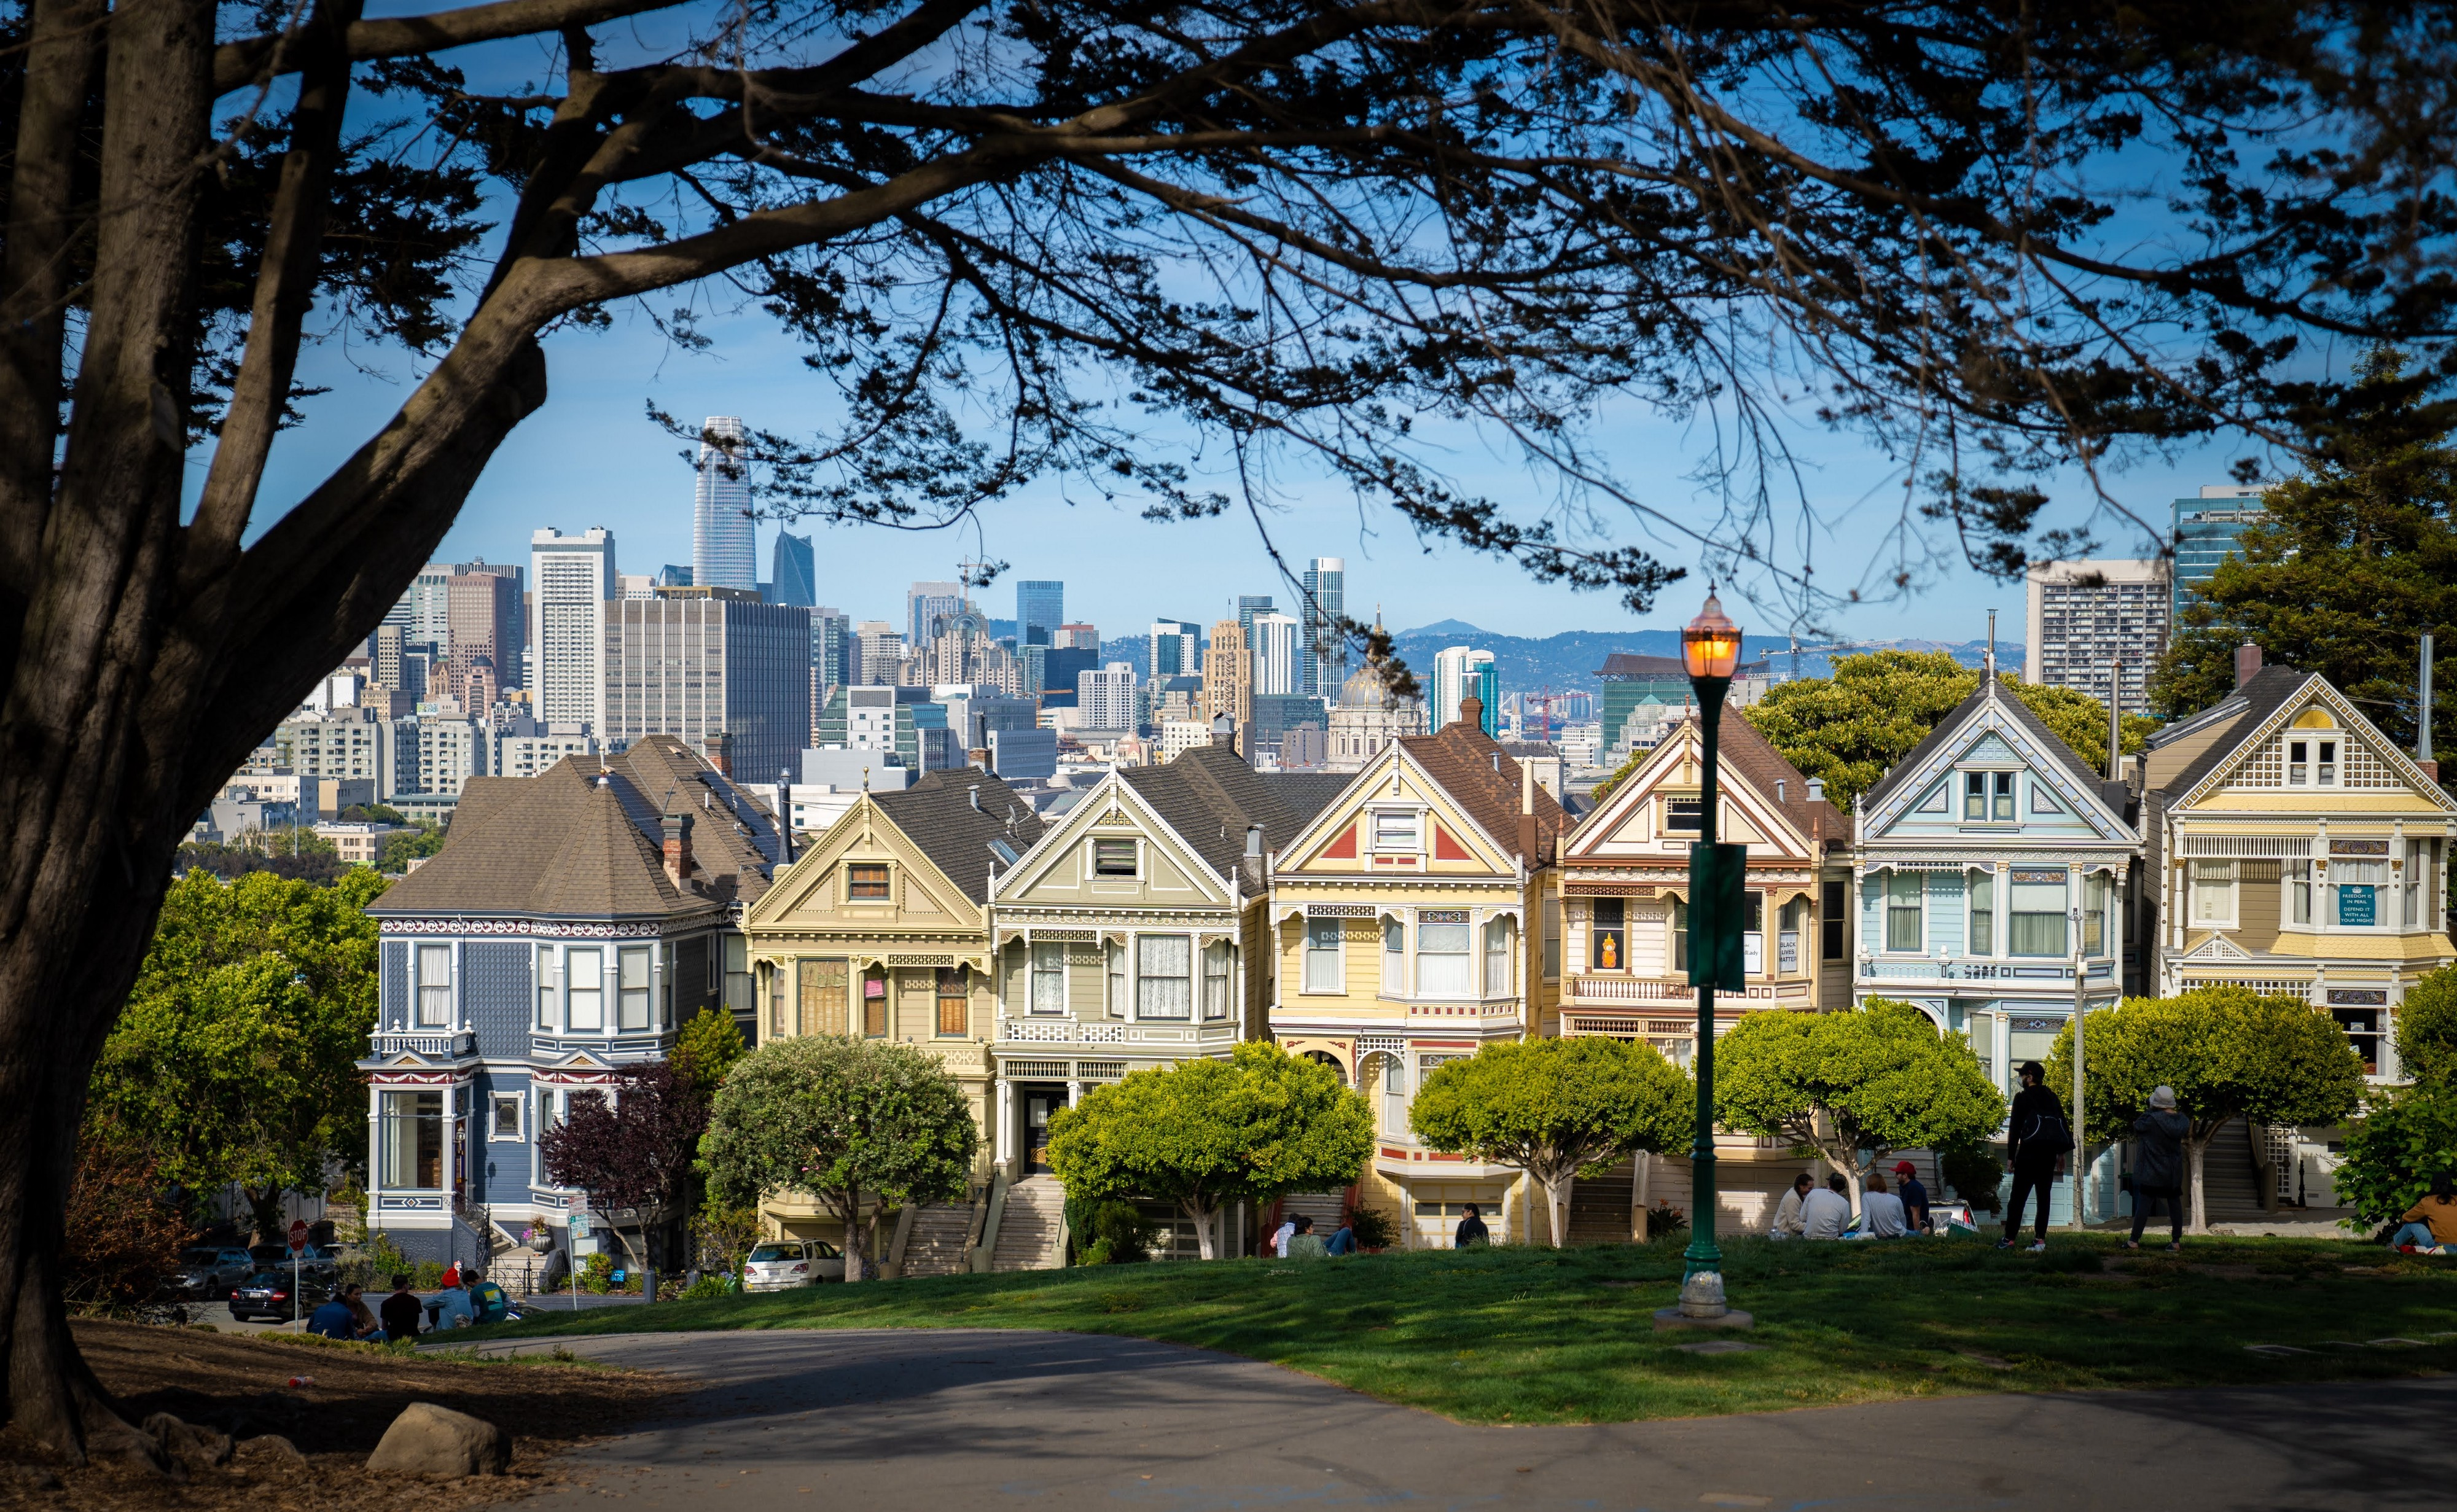 Photo of the colorful homes near Alamo Square Park in San Francisco by Minko Gechev